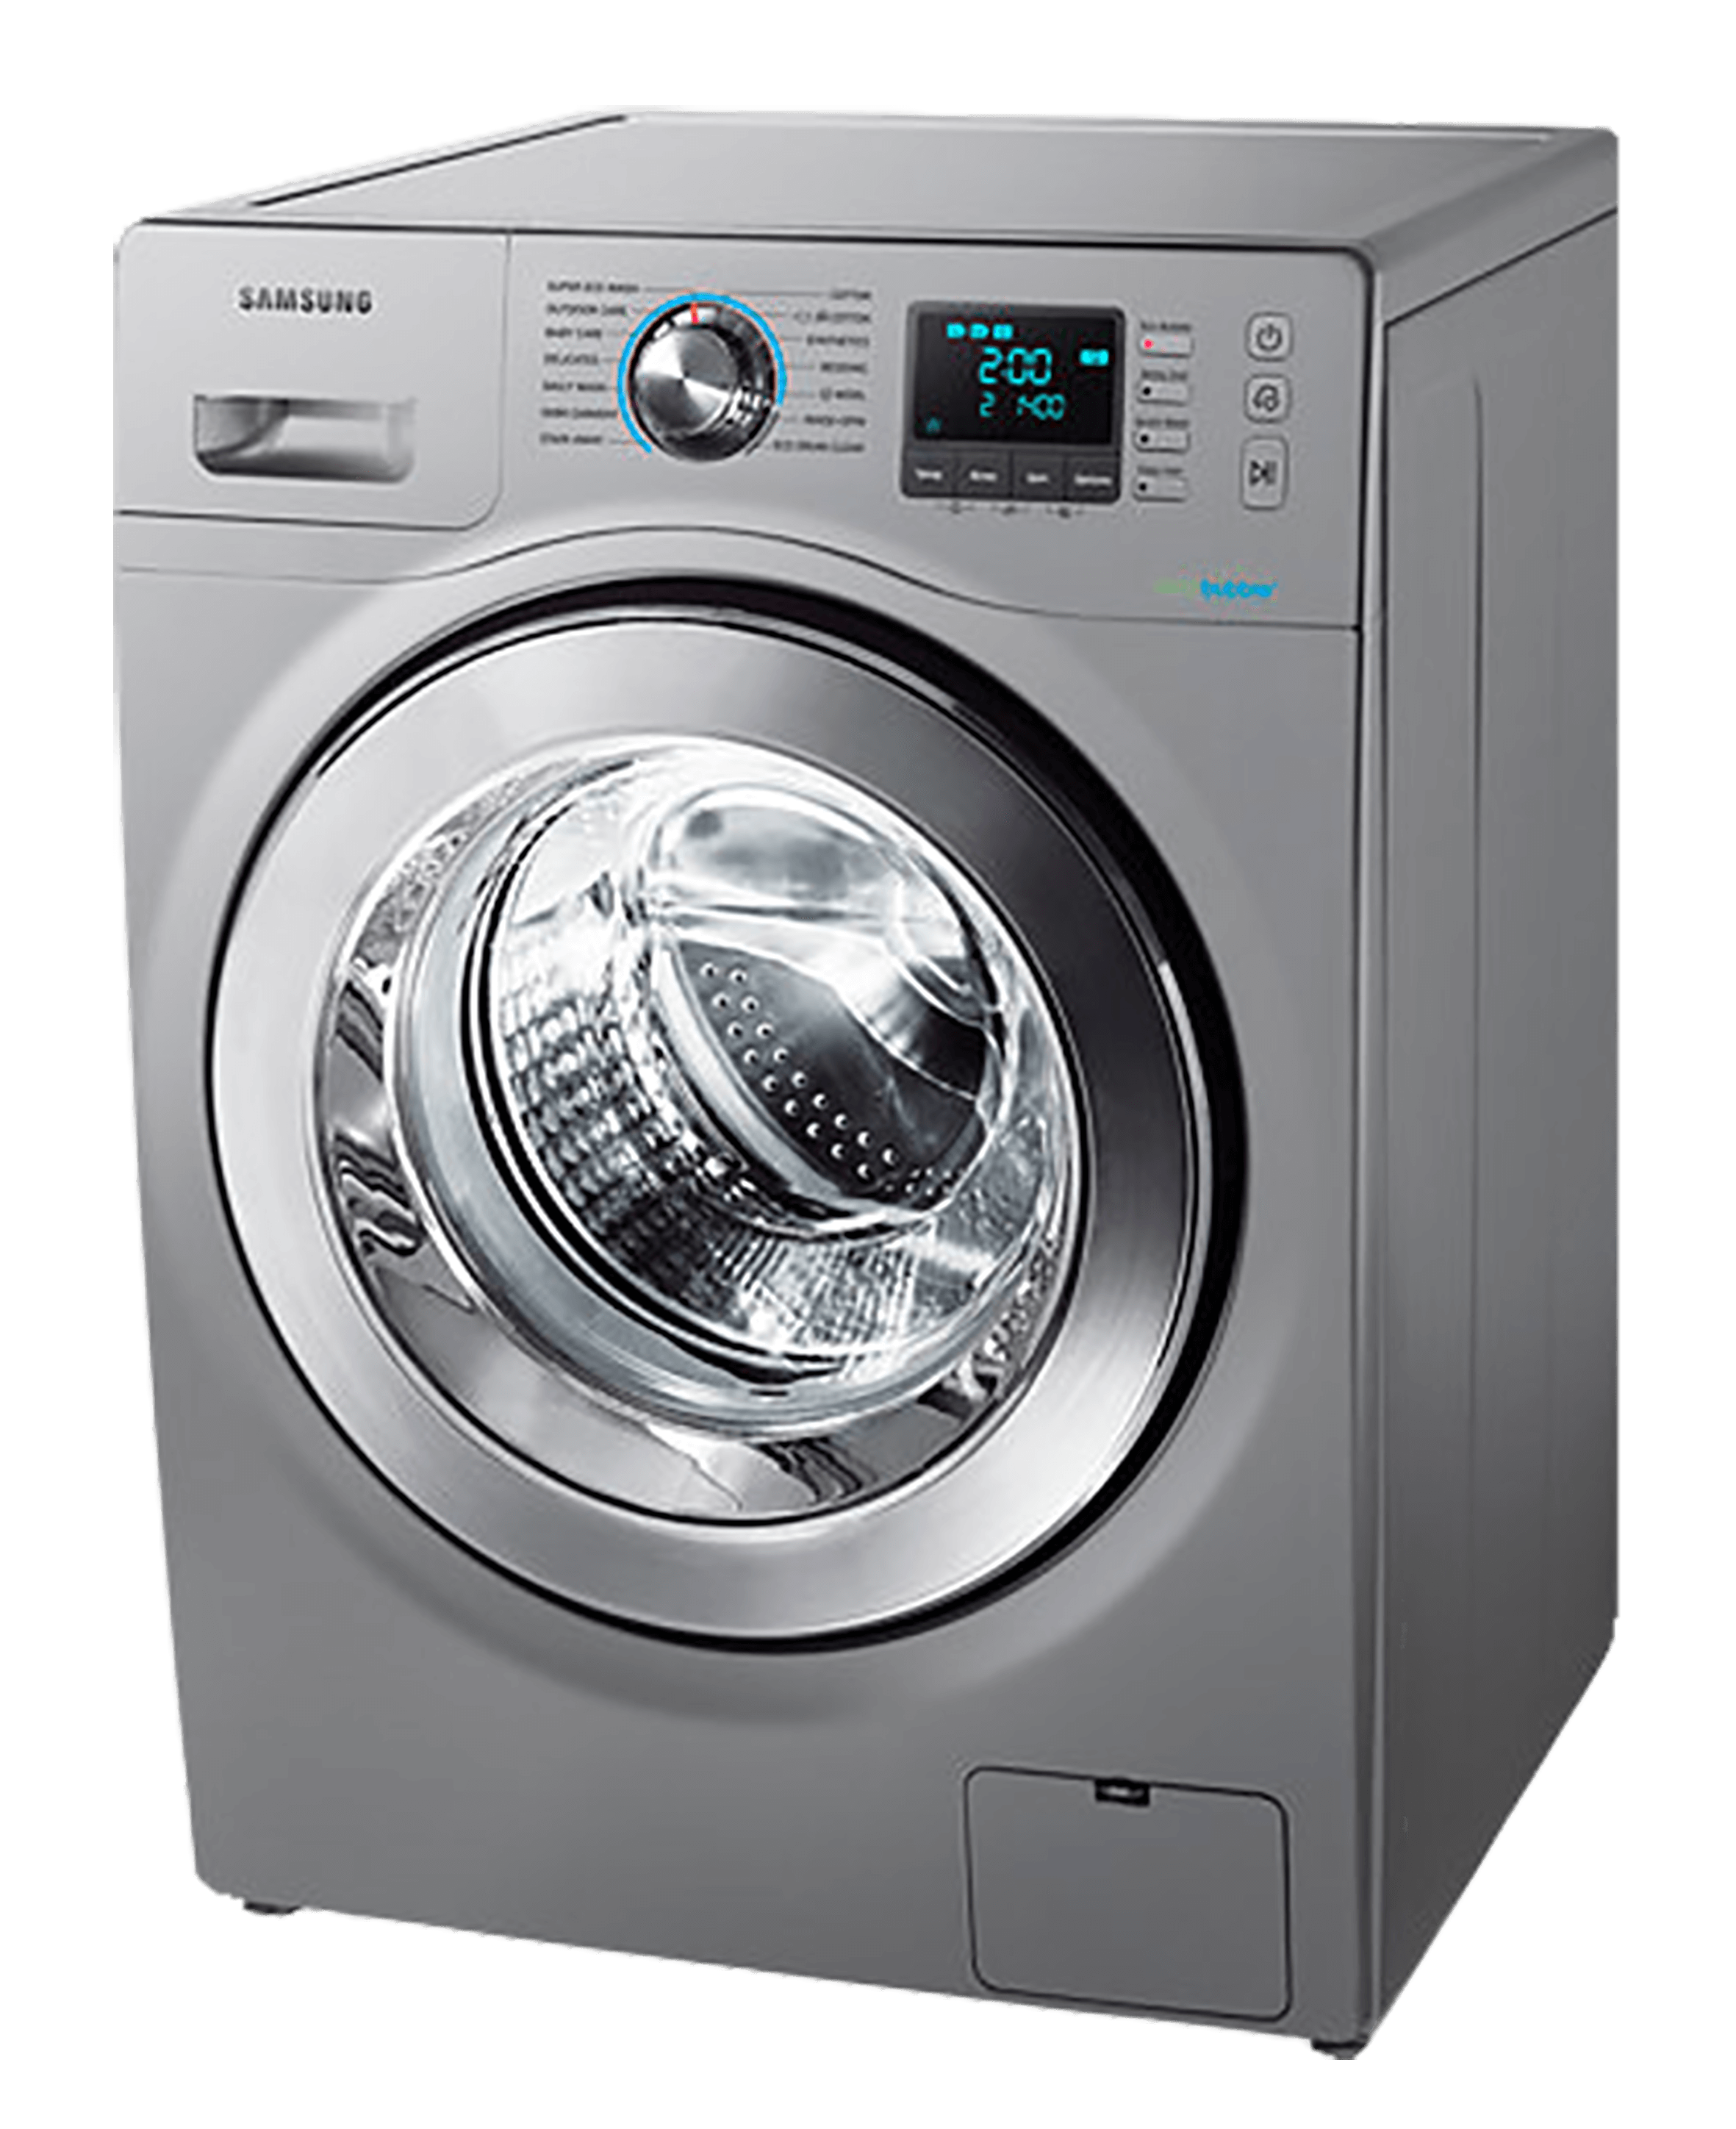 SAMSUNG FRONT LOADER WASHING MACHINE (SILVER) MODEL ...